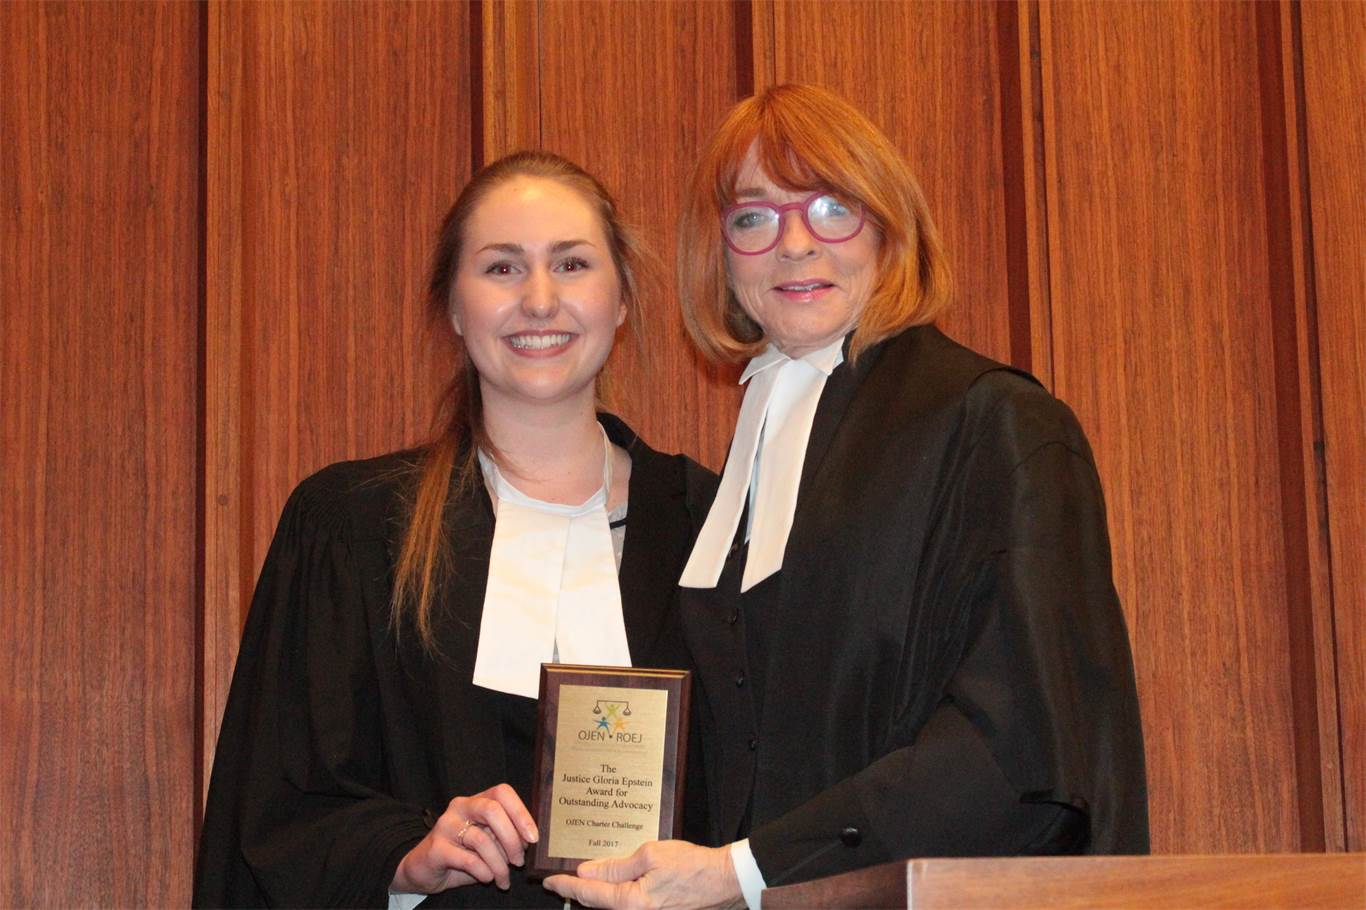 STM student Madalyn Morrison was awarded the Justice Epstein Award for Oral Advocacy.